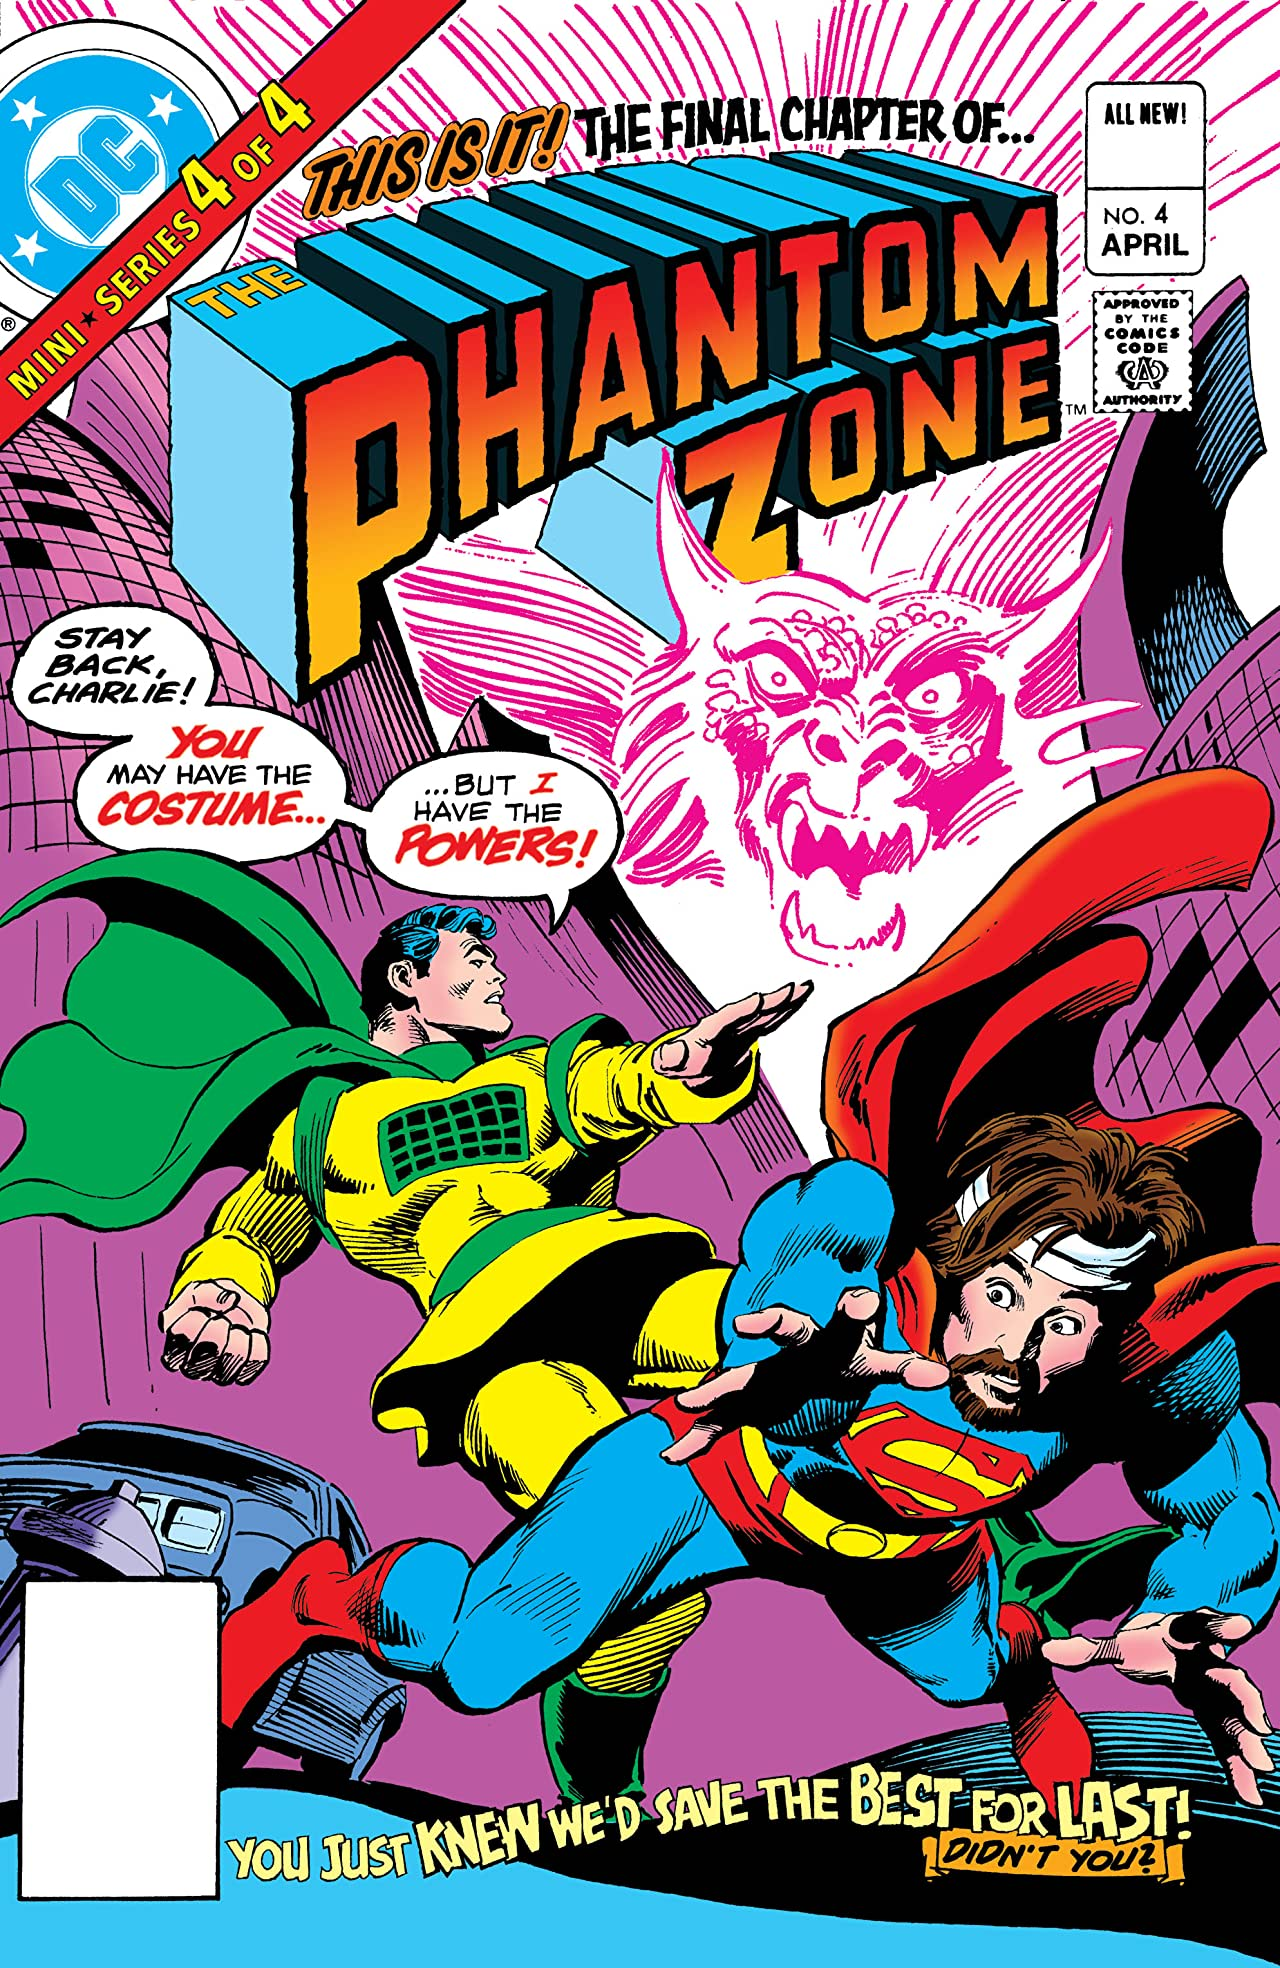 Superman Presents The Phantom Zone (1982) #4